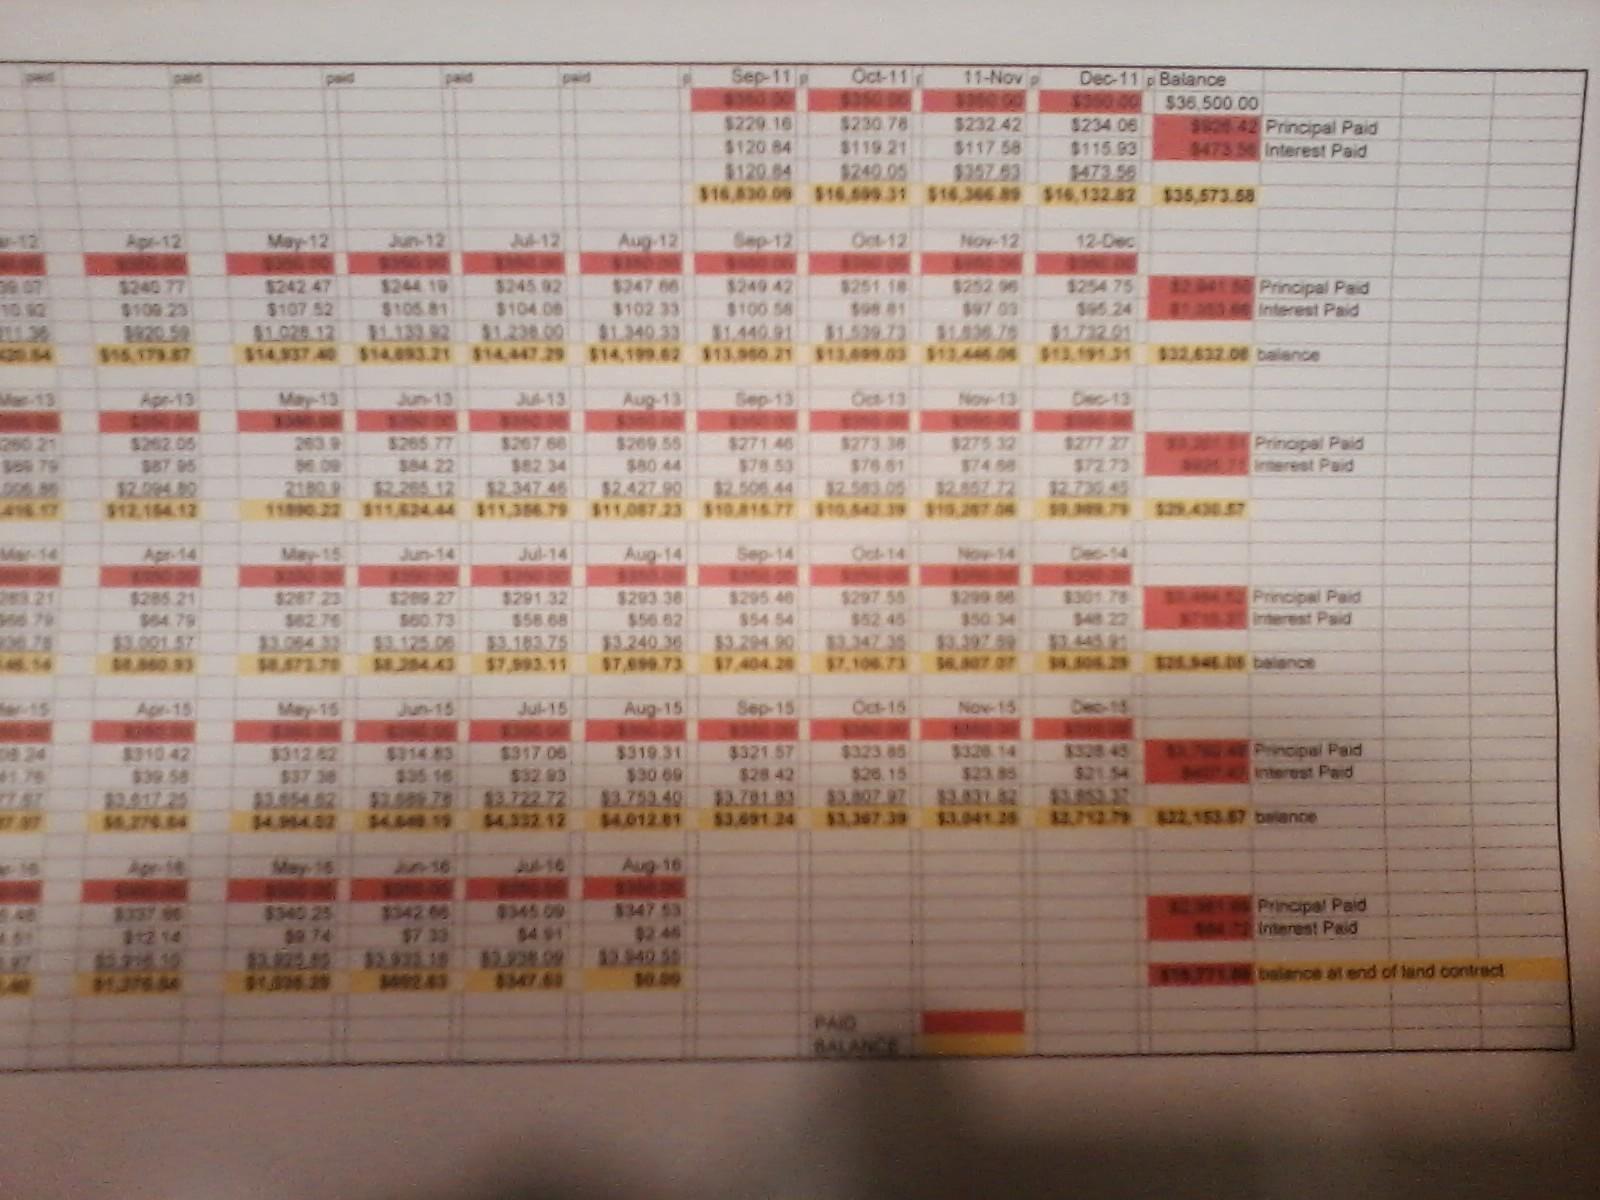 20 Year Amortization Schedule Excel Unique 10 Year Amortization Schedule